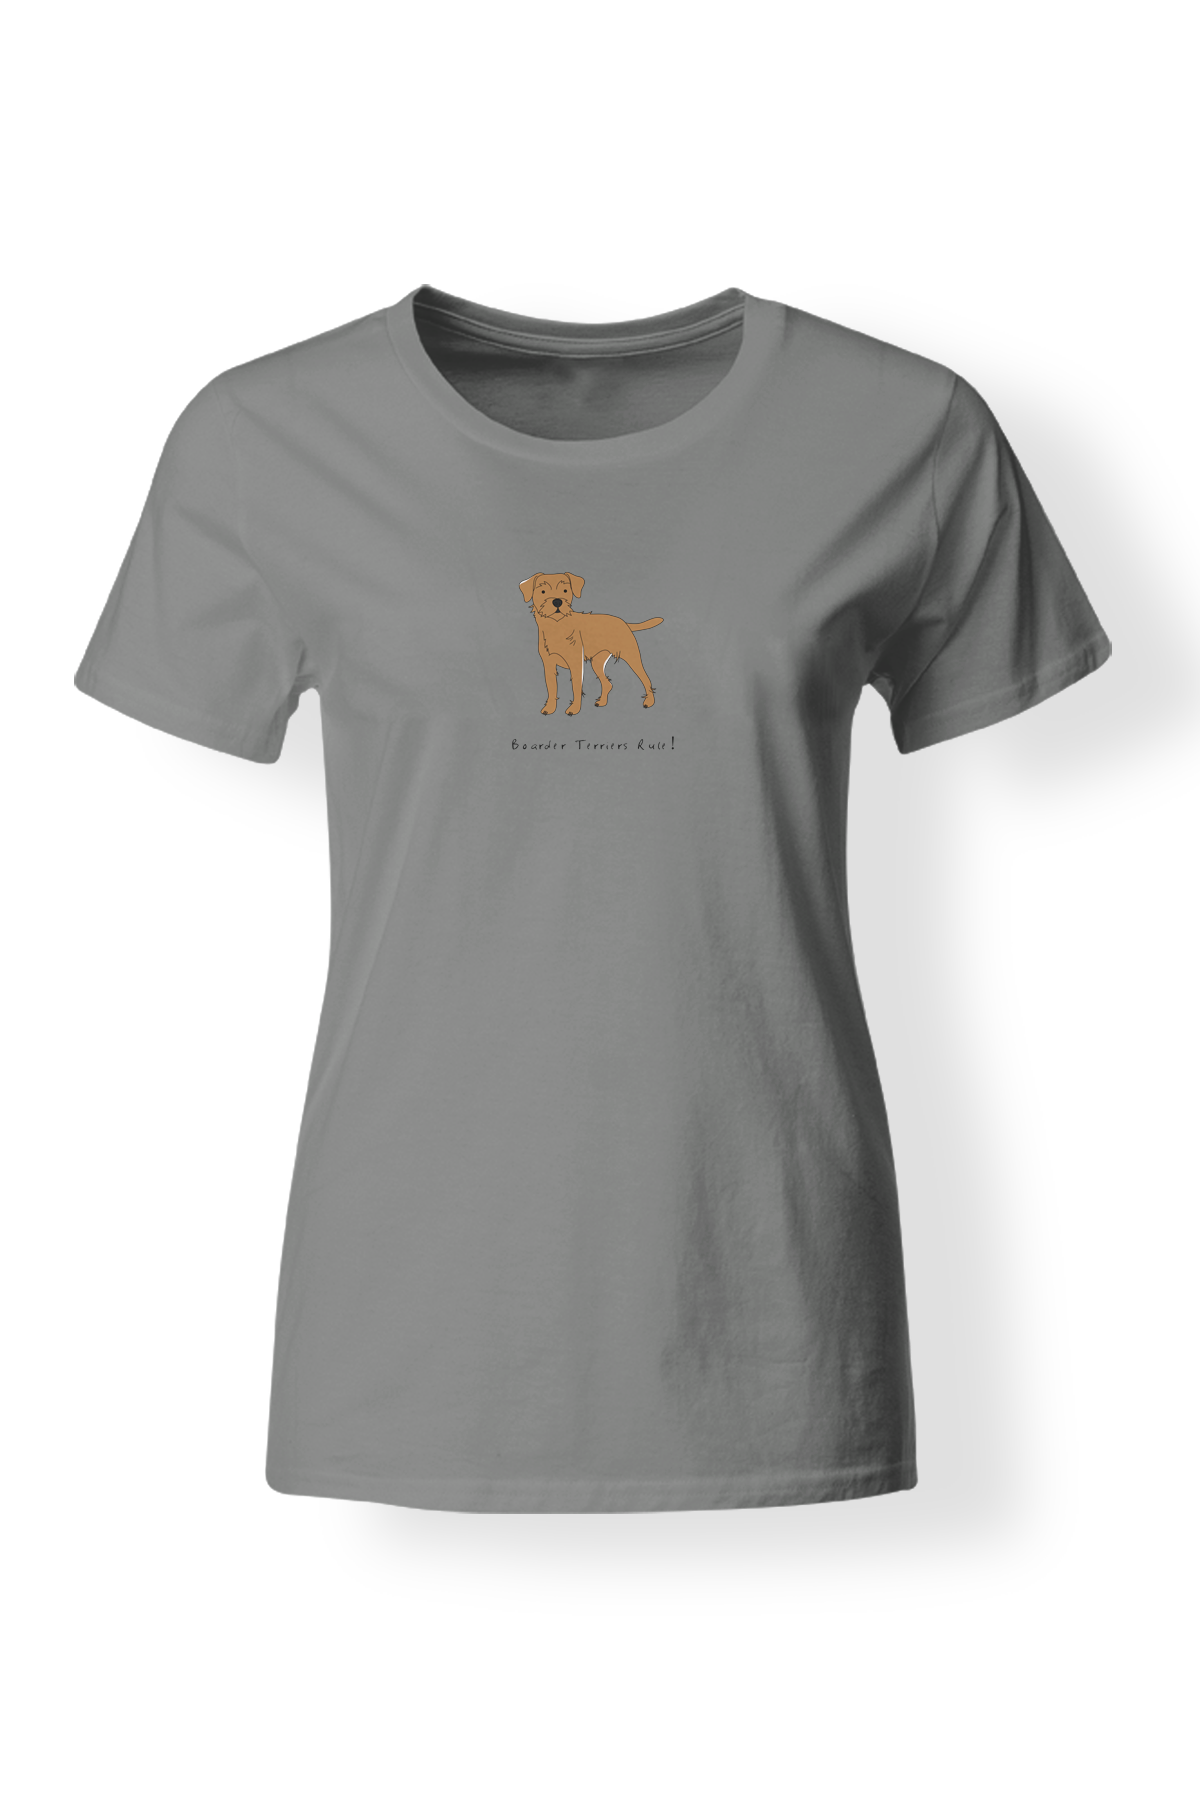 Ladies Fitted Crew Neck T-Shirt - Boarder Terriers Rule! Heather Grey